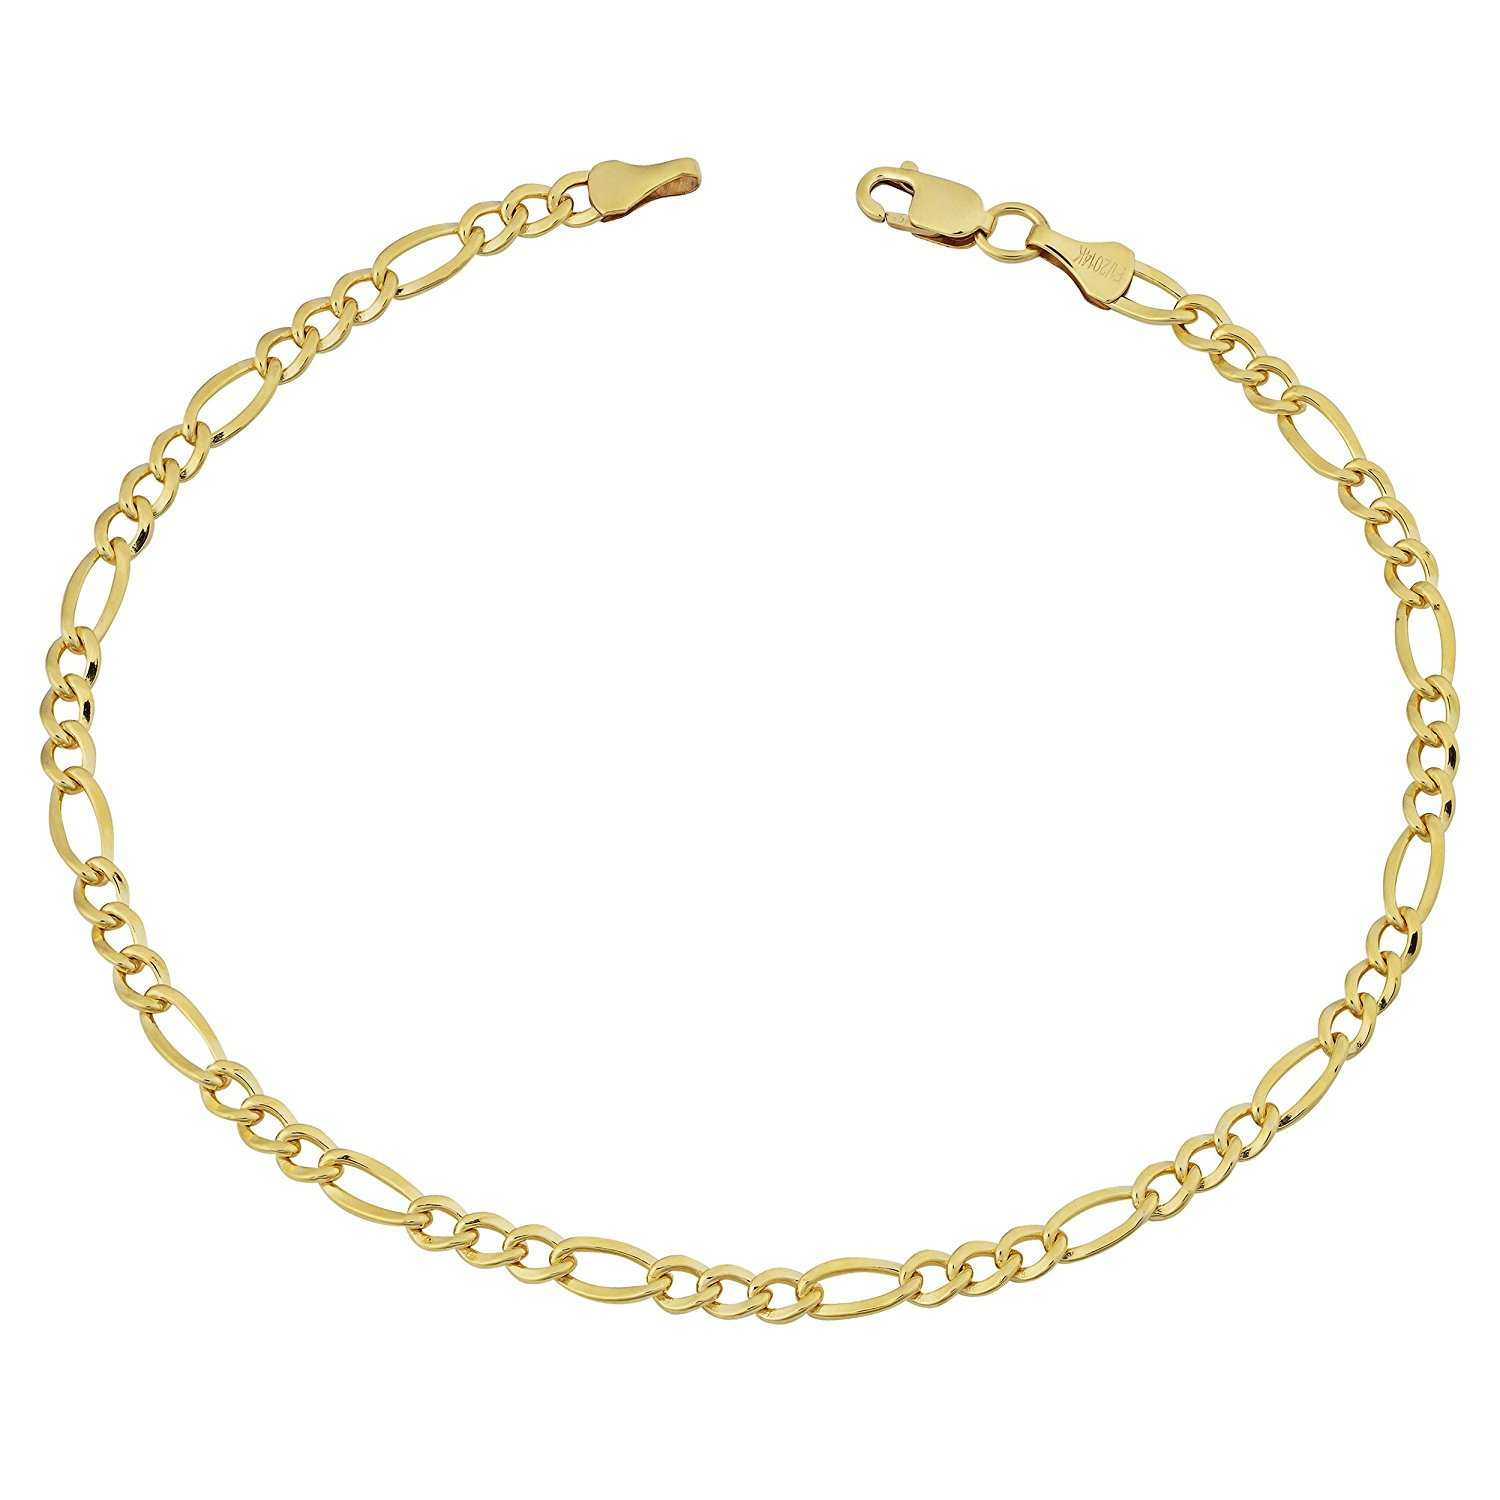 14K Yellow Gold Filled Solid Figaro Chain Bracelet, 3.2 mm, 8.5″